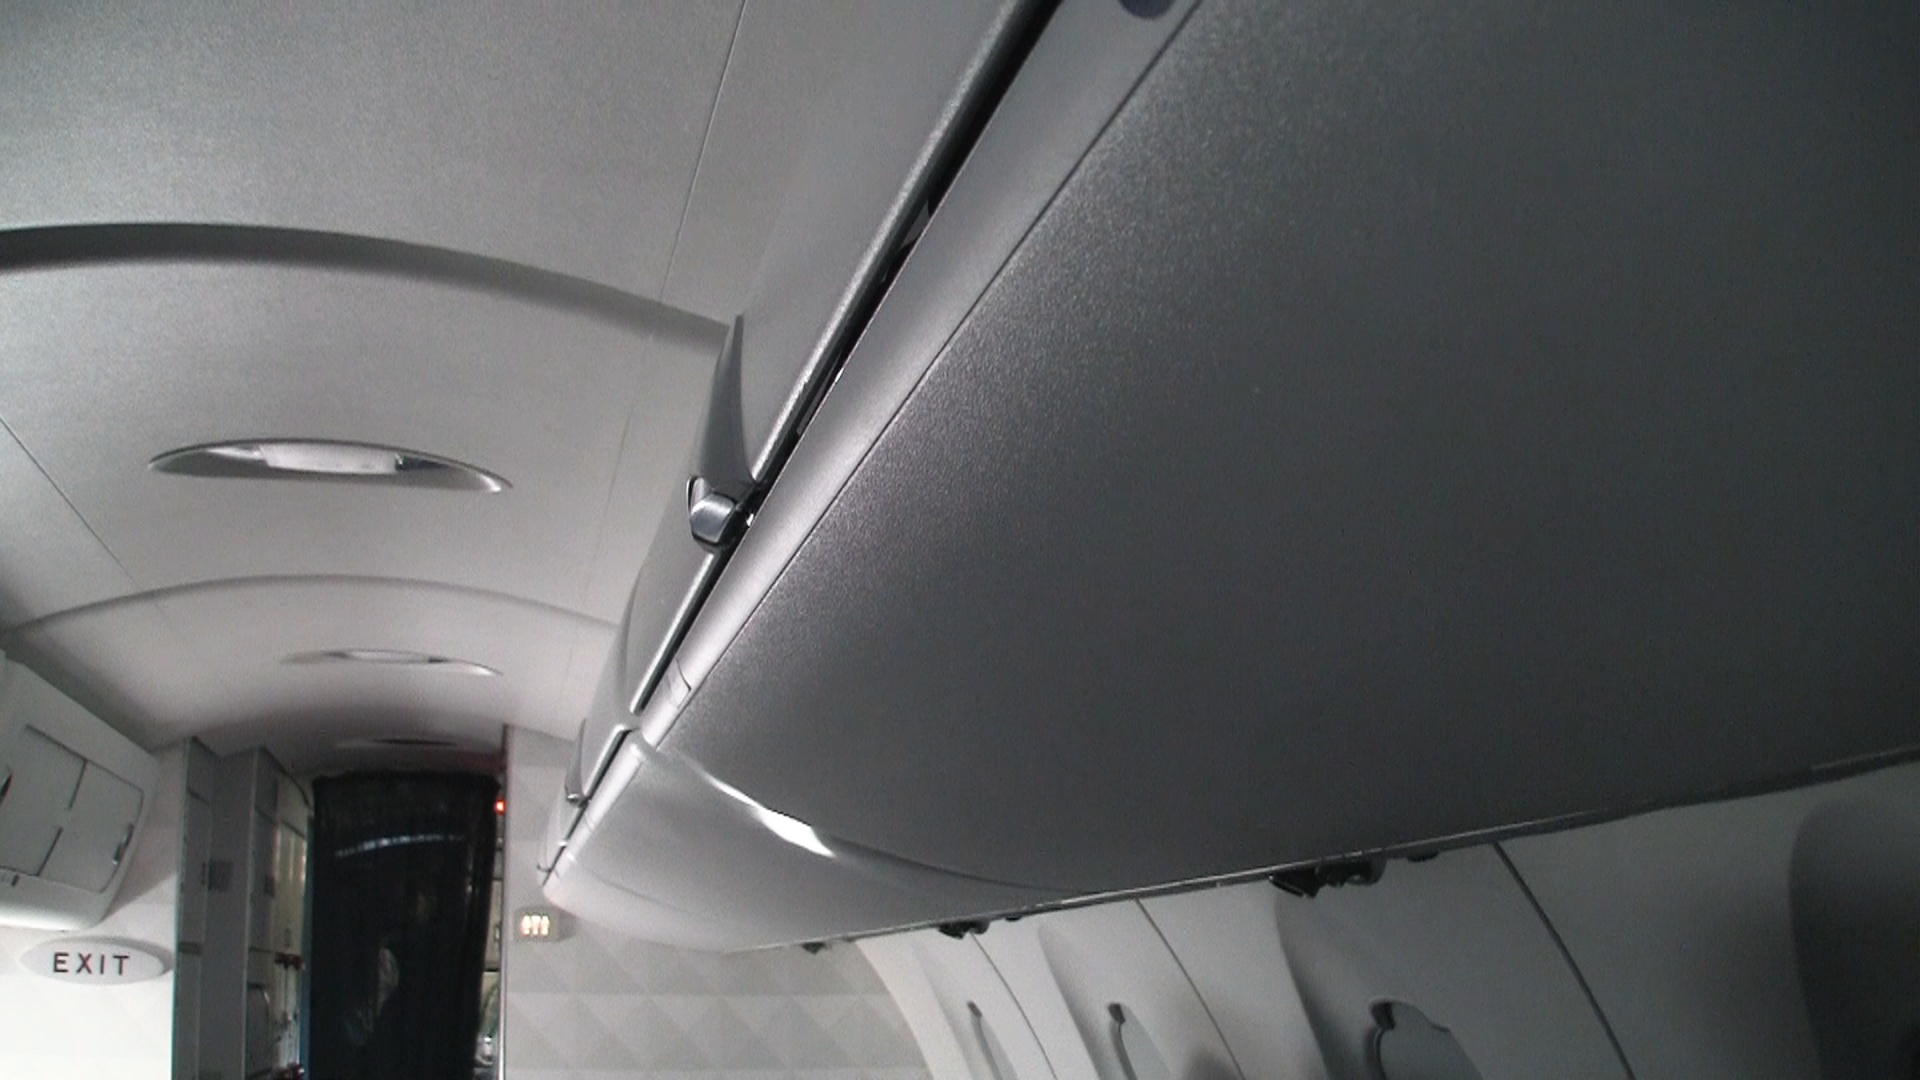 Delta Airlines First Class Review Crj 900 Video Modhop Com